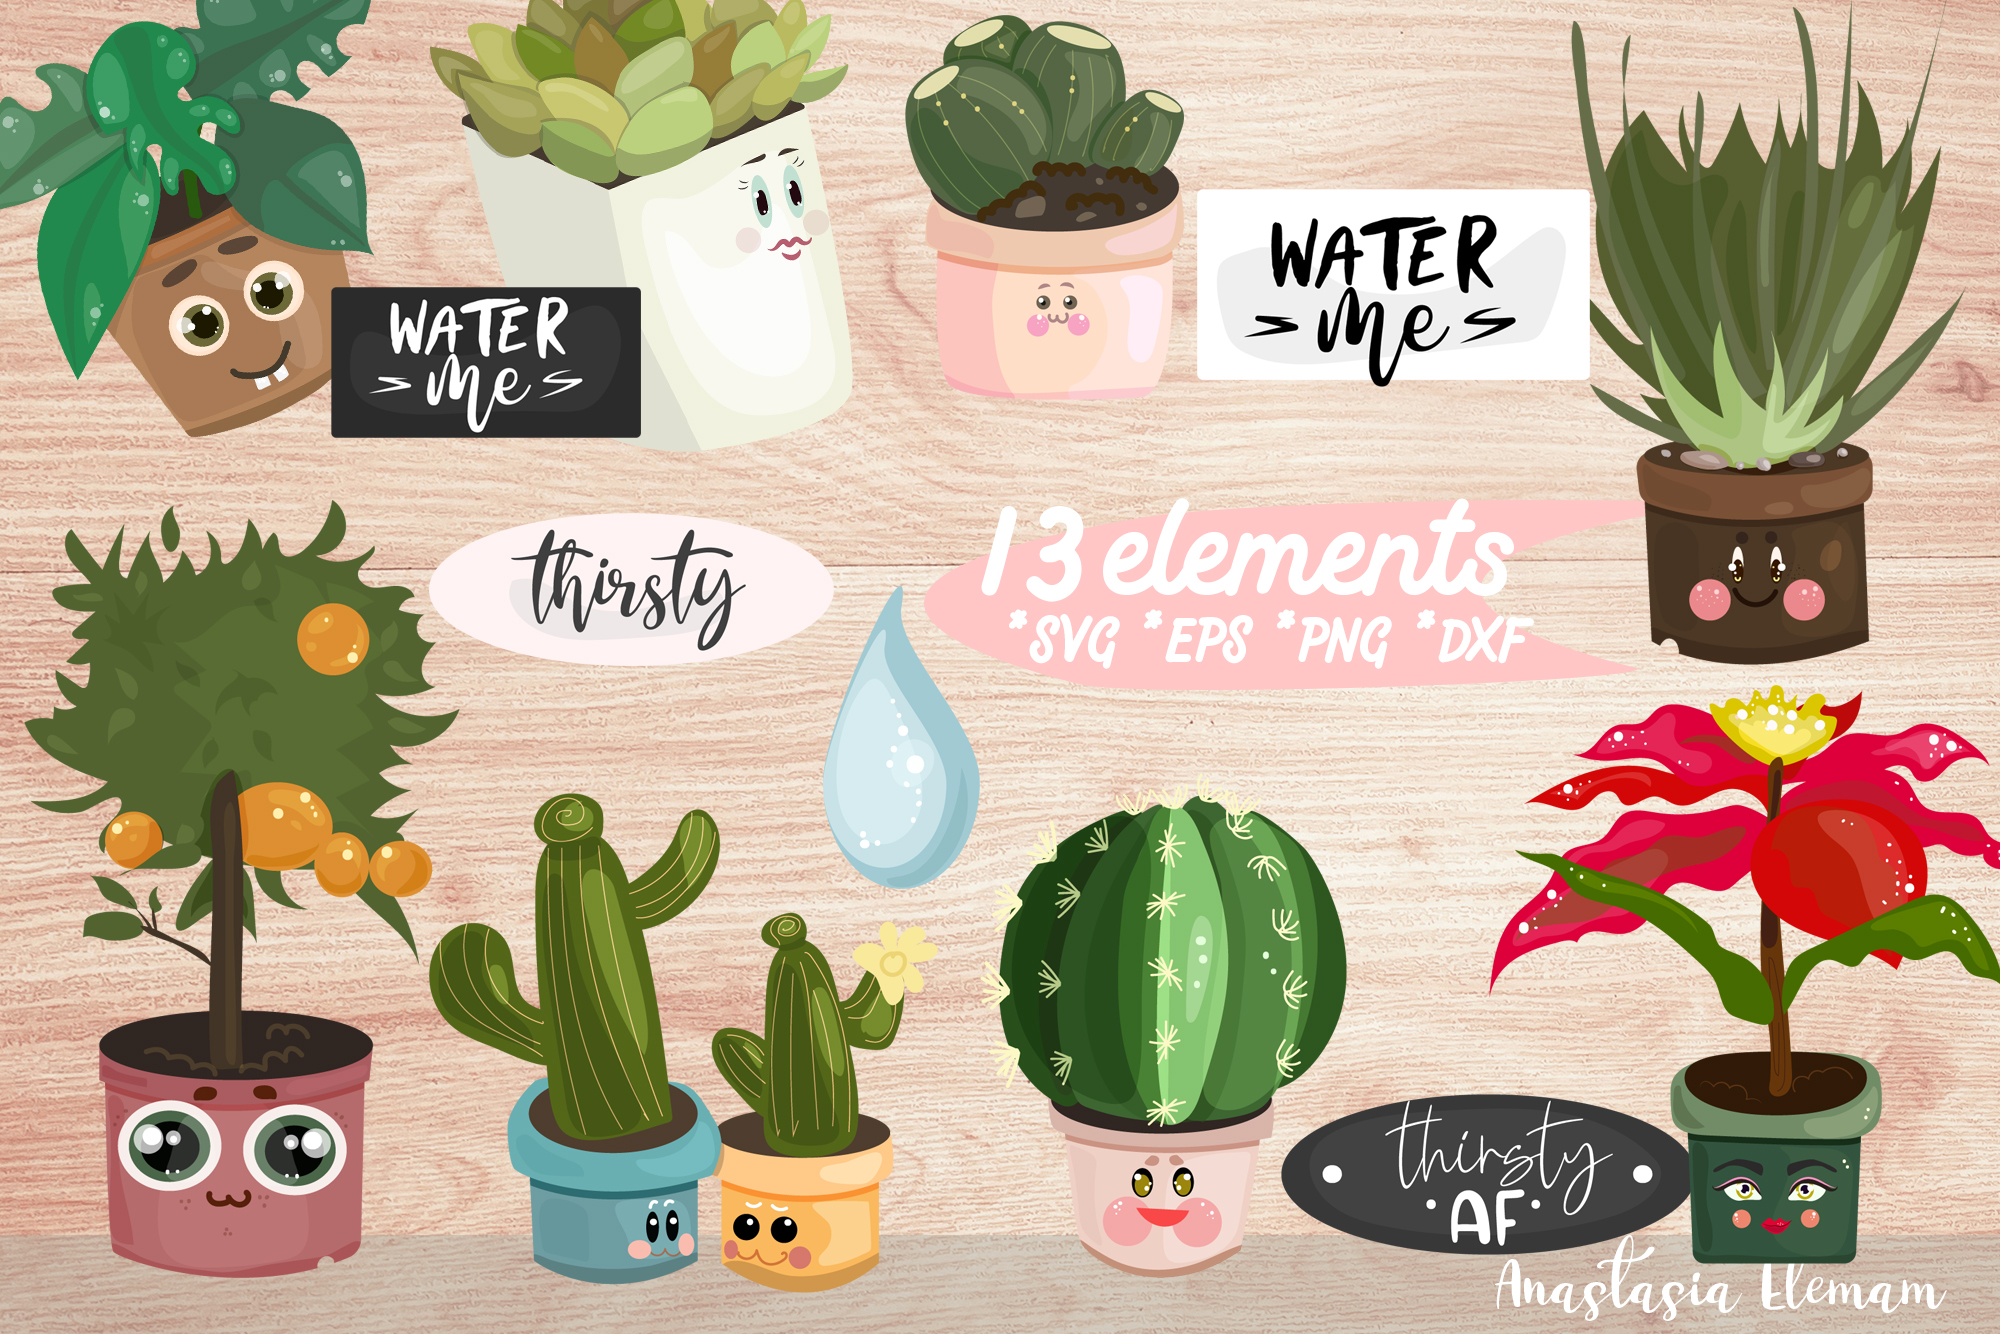 Download Free Vector Clipart Set Waterme Potted Plants Graphic By Anes Art for Cricut Explore, Silhouette and other cutting machines.